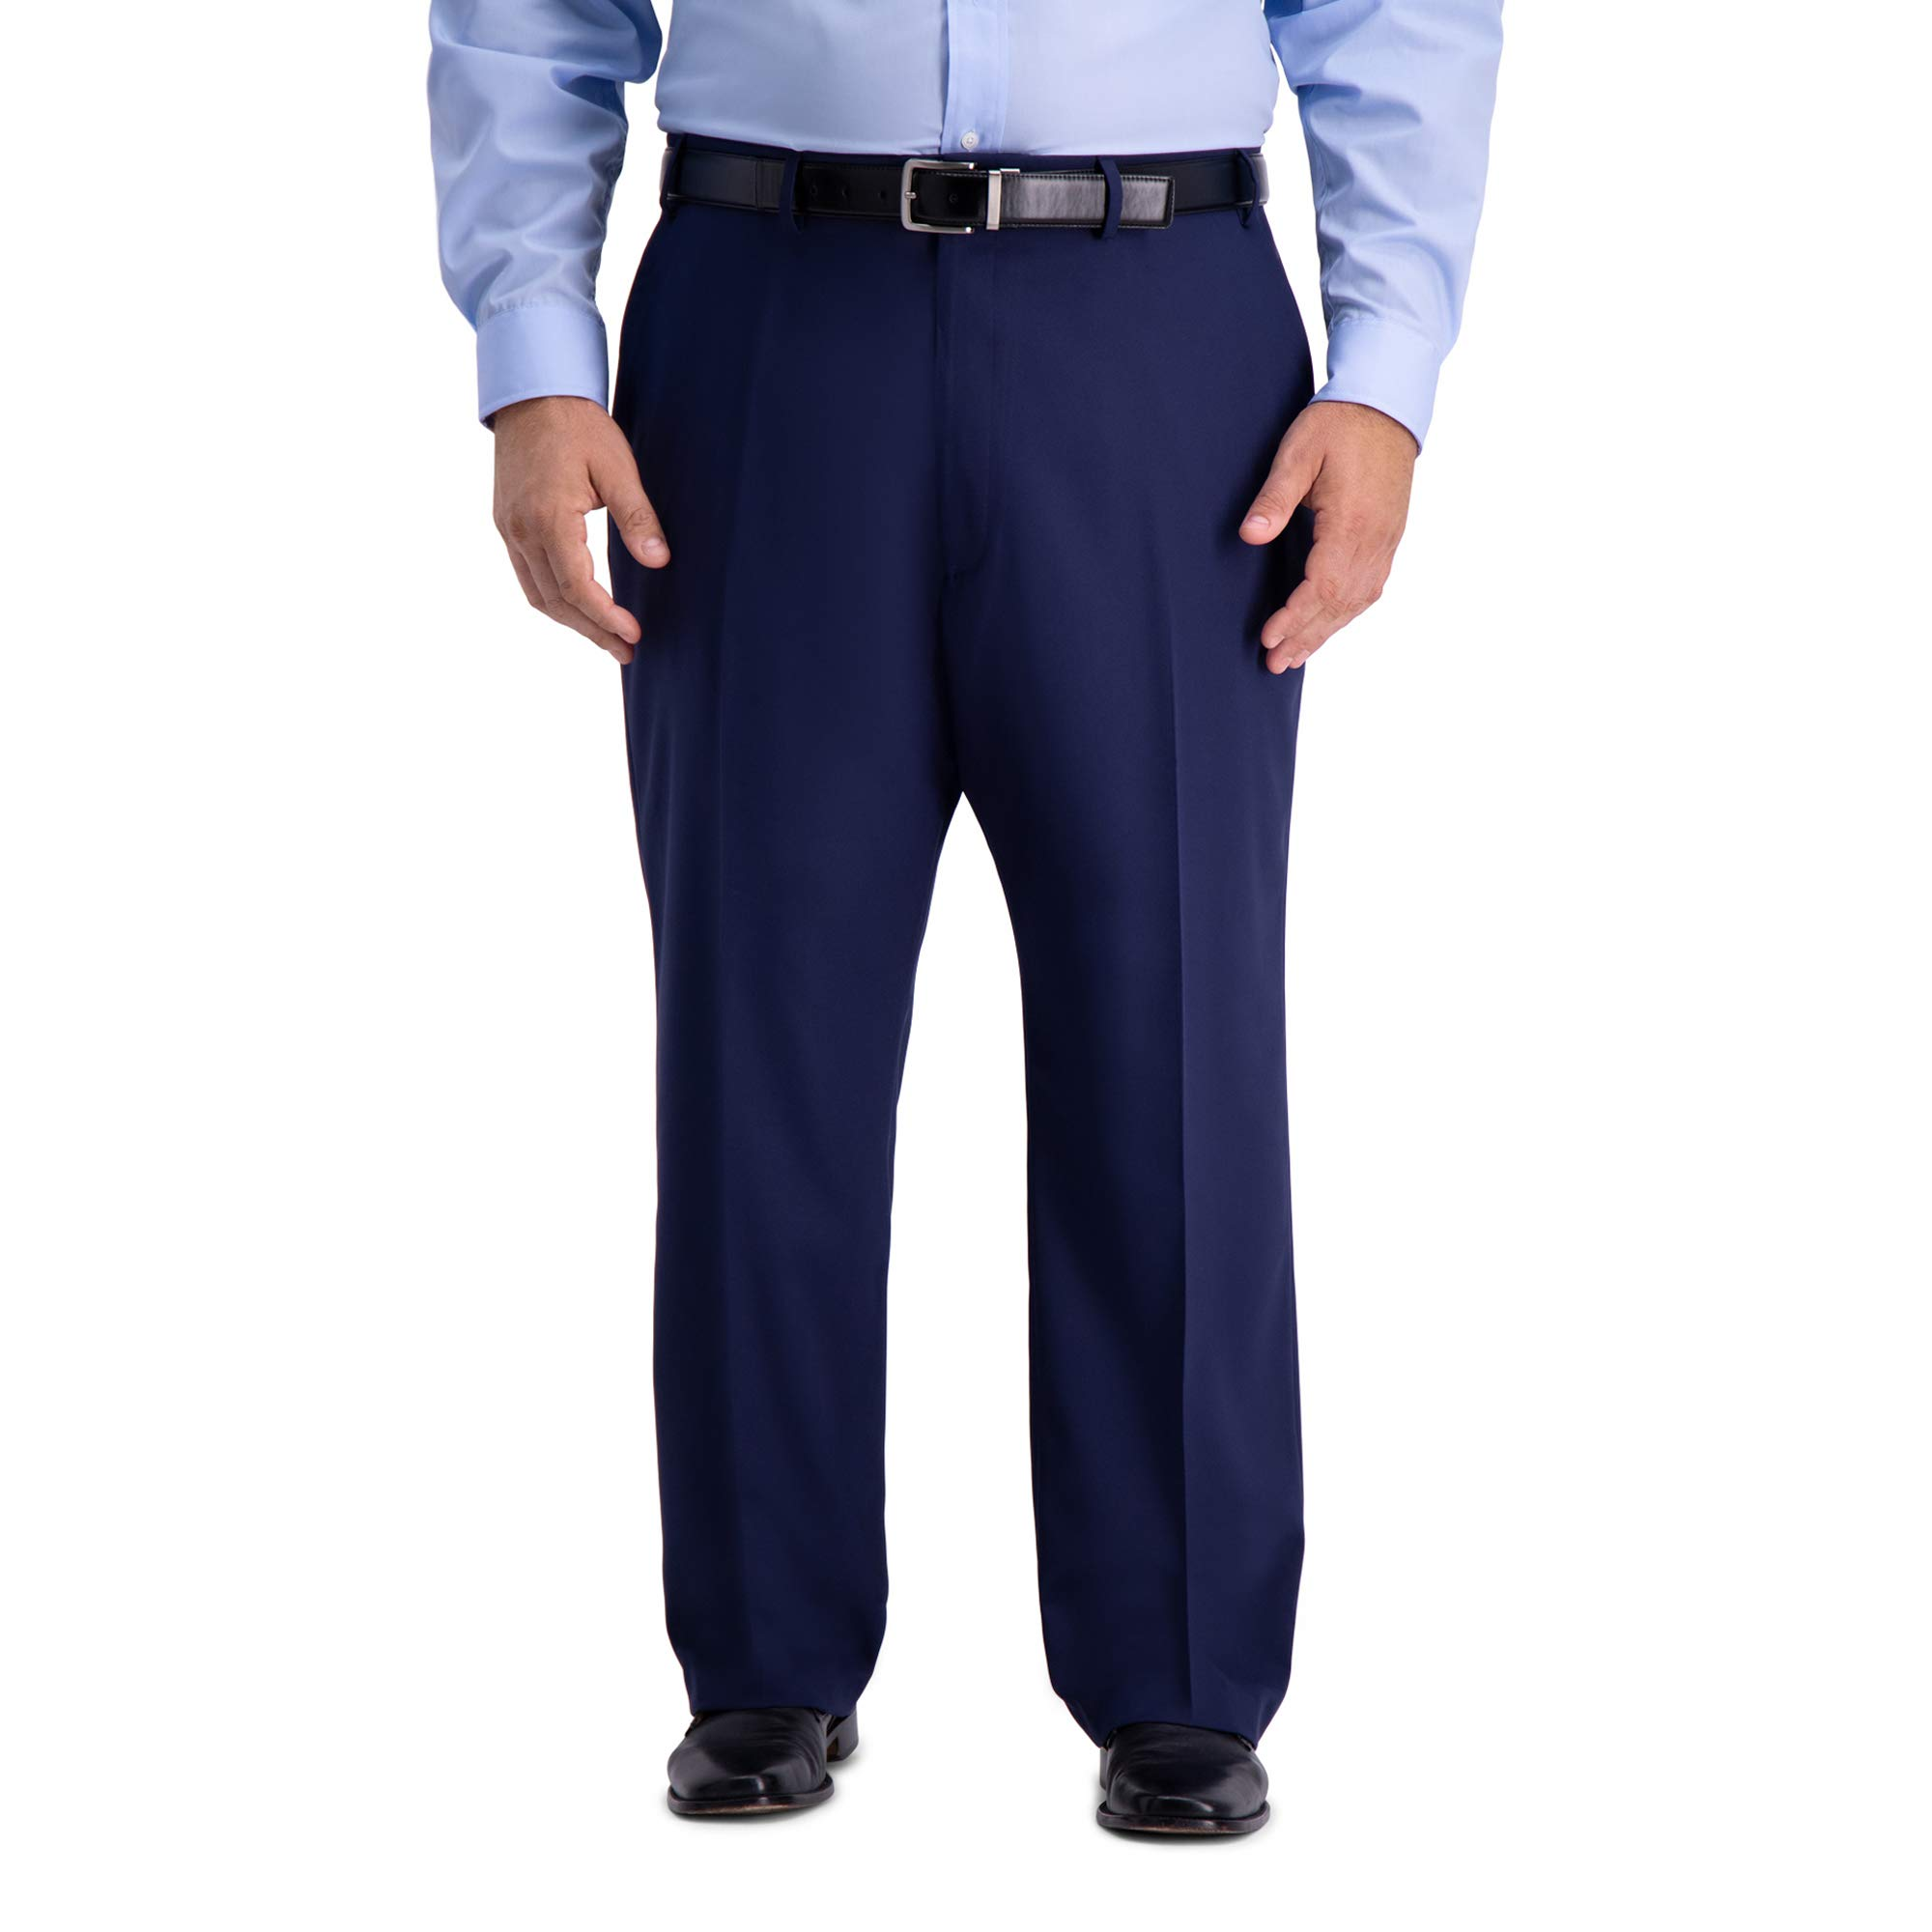 Haggar Men's Tall B&T Active Series Stretch Classic Fit Suit Separate Pant, Midnight 46Wx34L